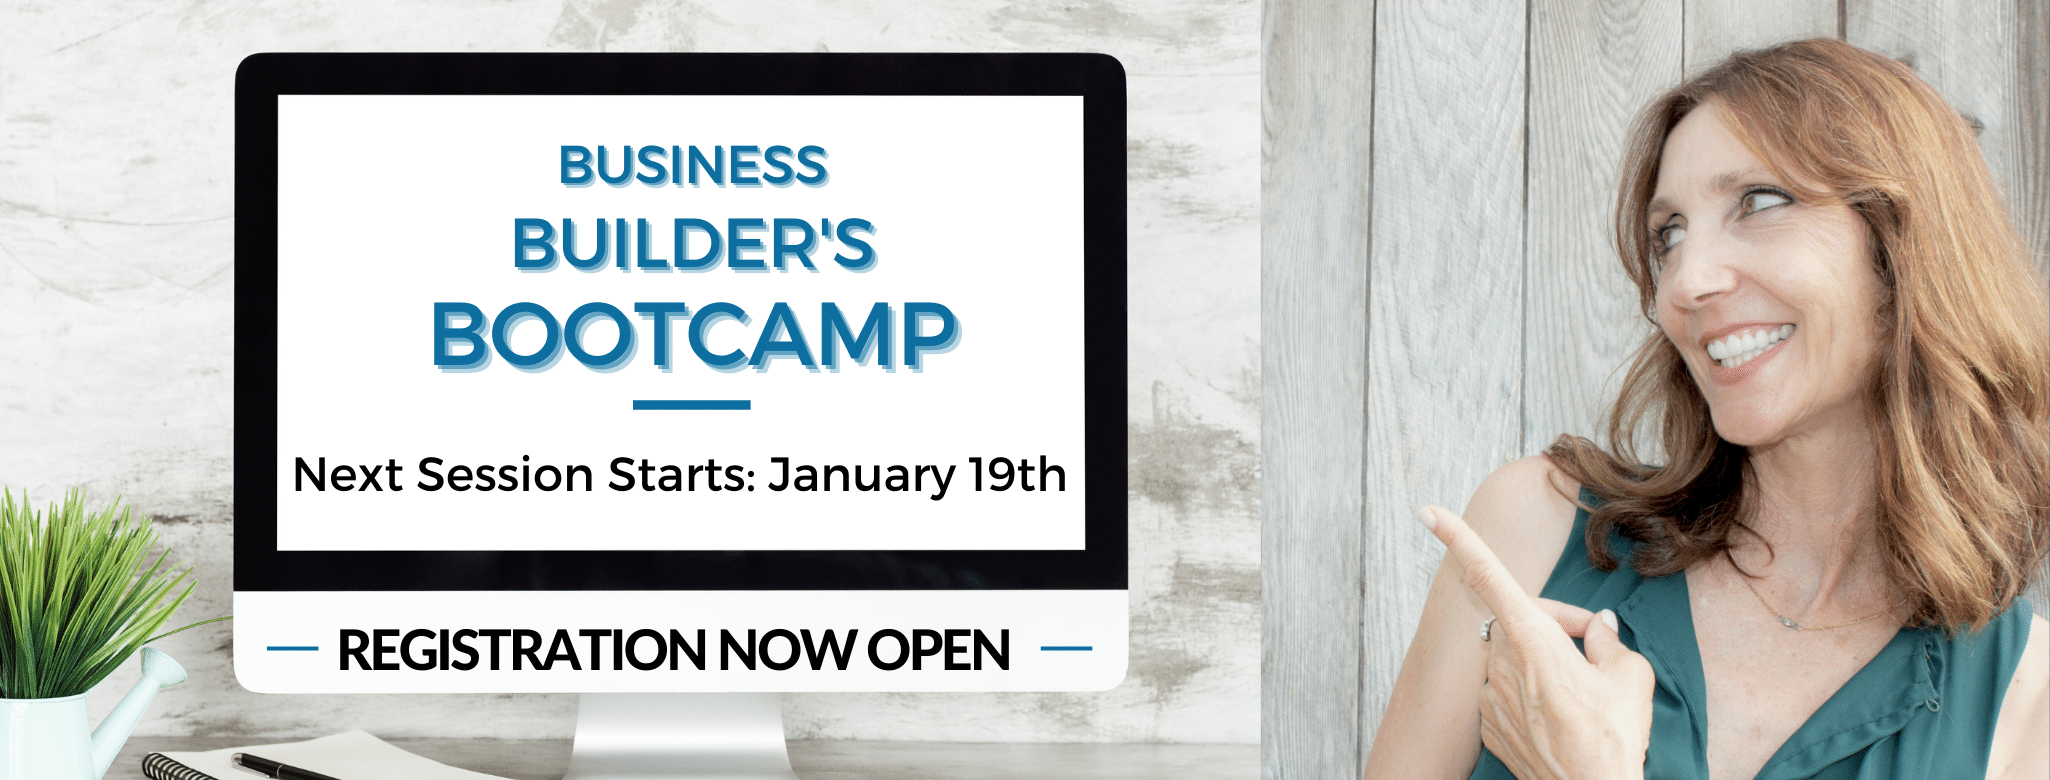 Business Builders Bootcamp